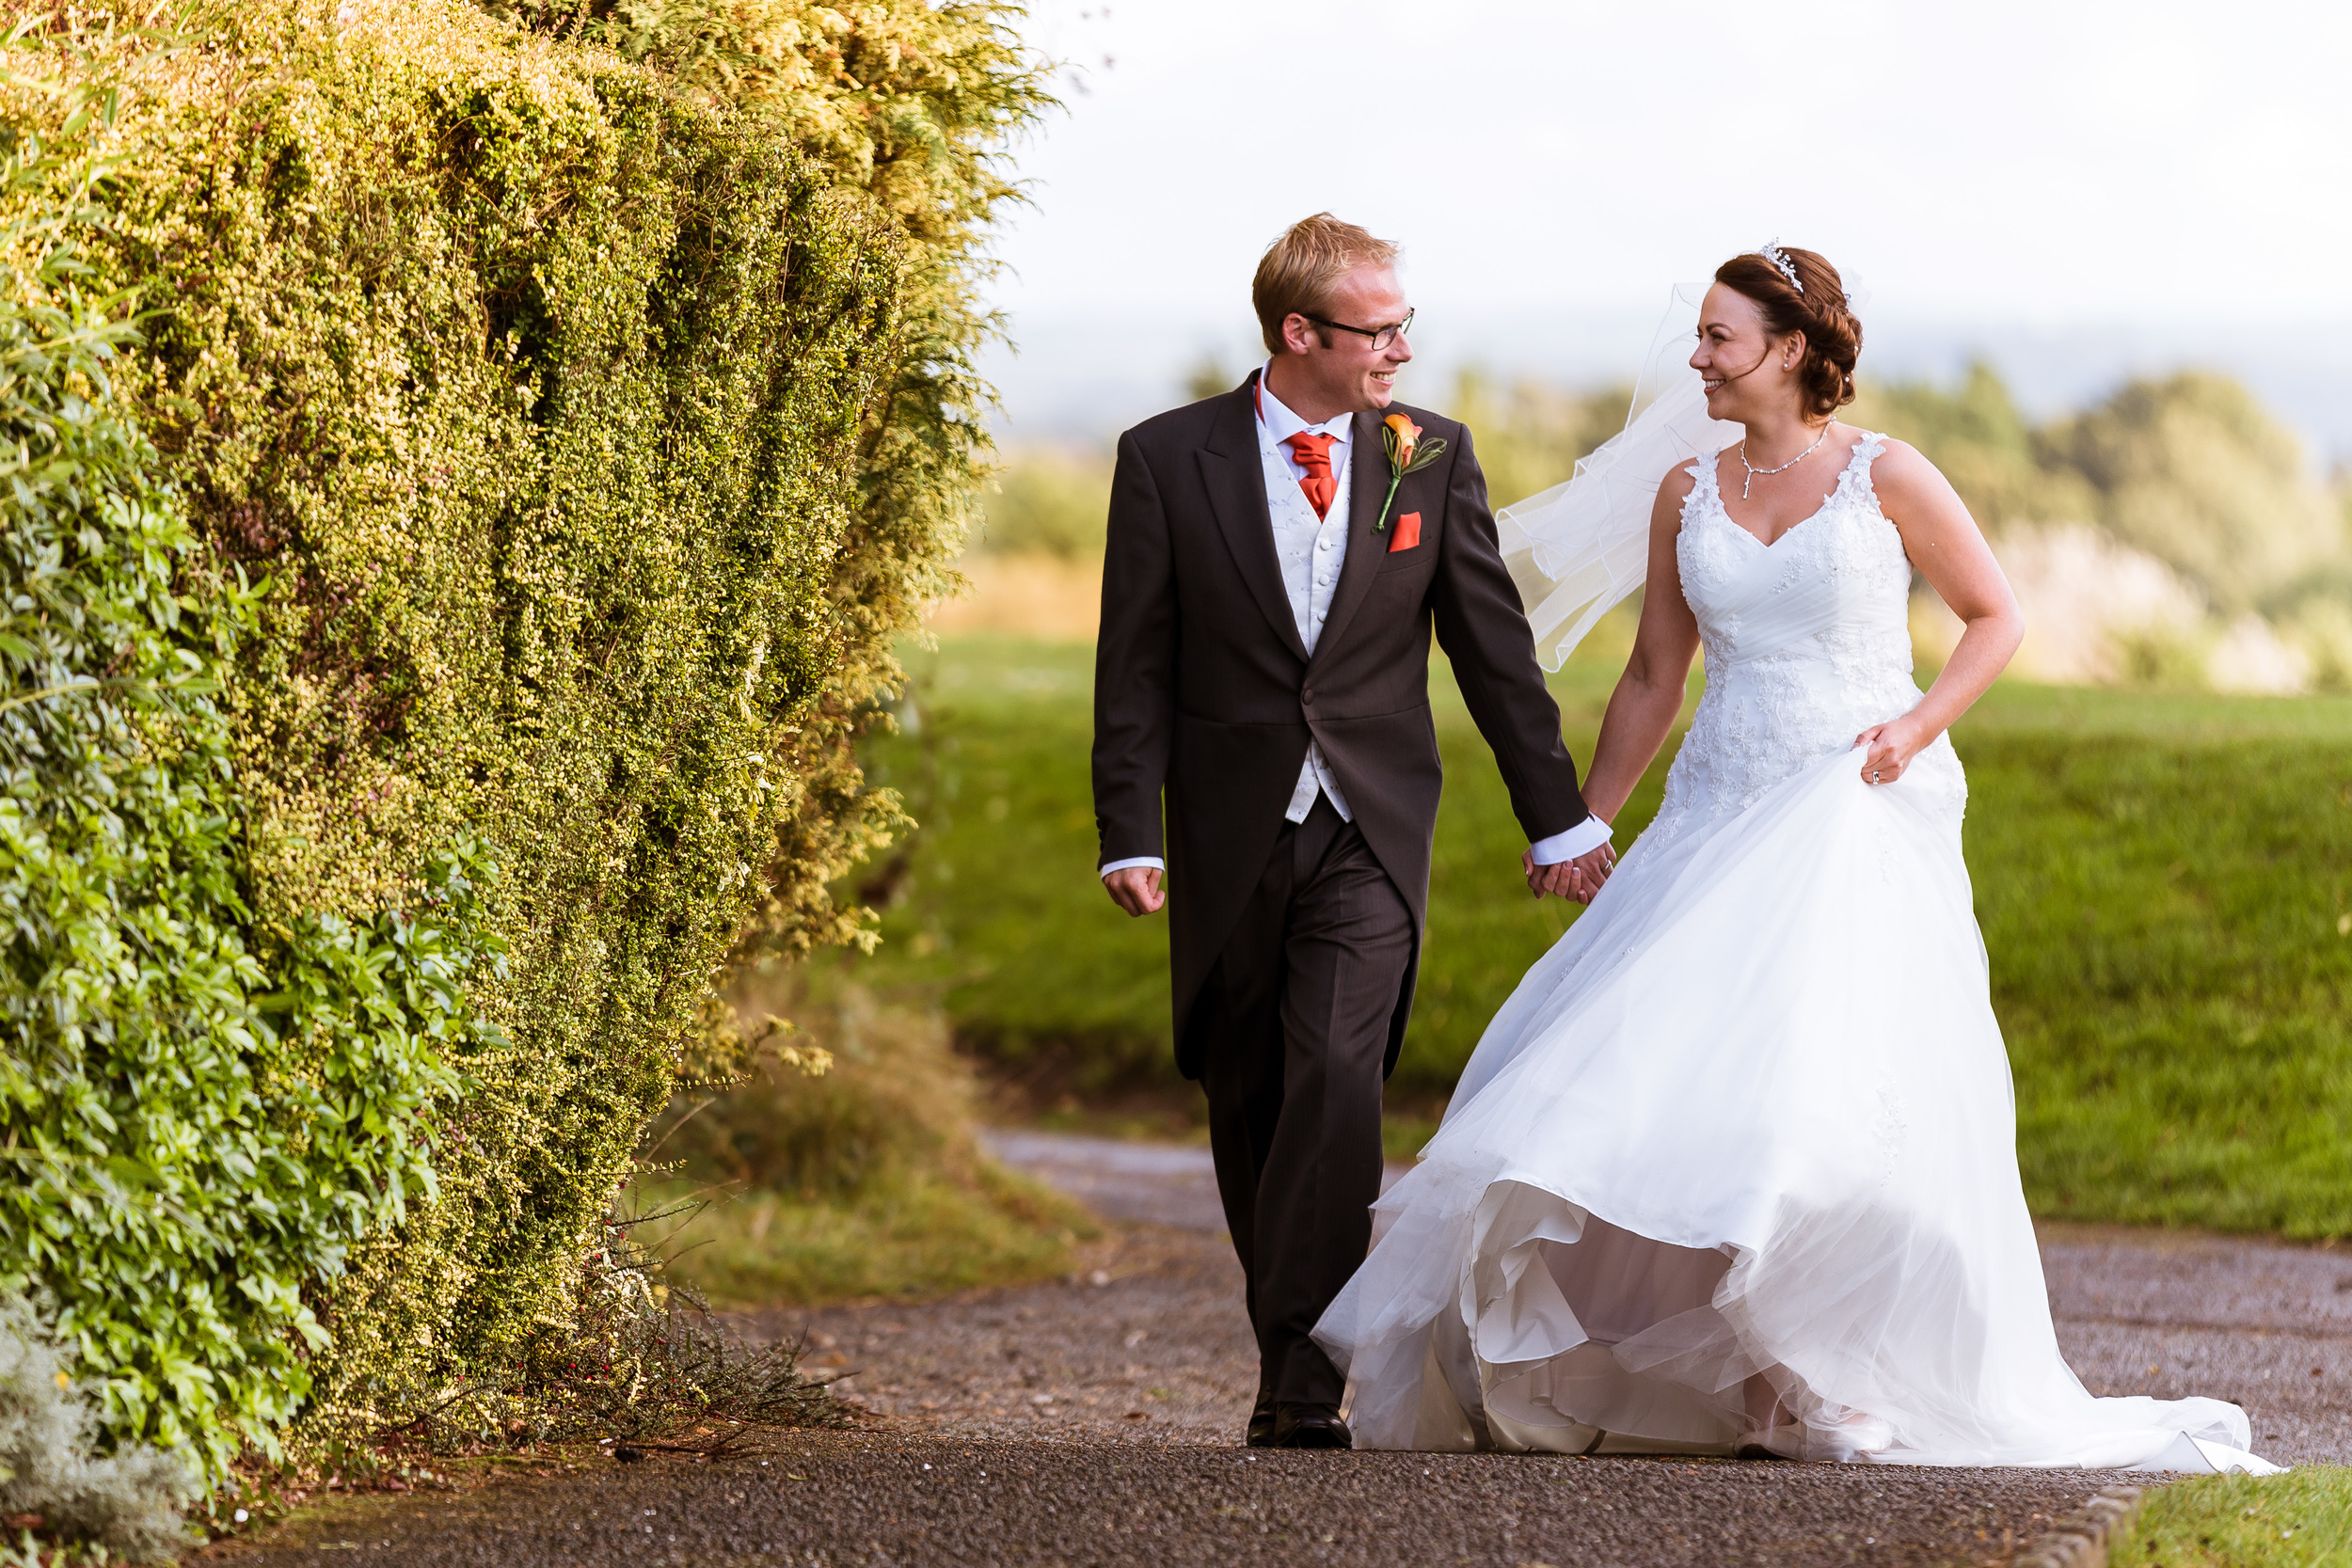 A Beautifully Autumn wedding in East Sussex at Dale Hill